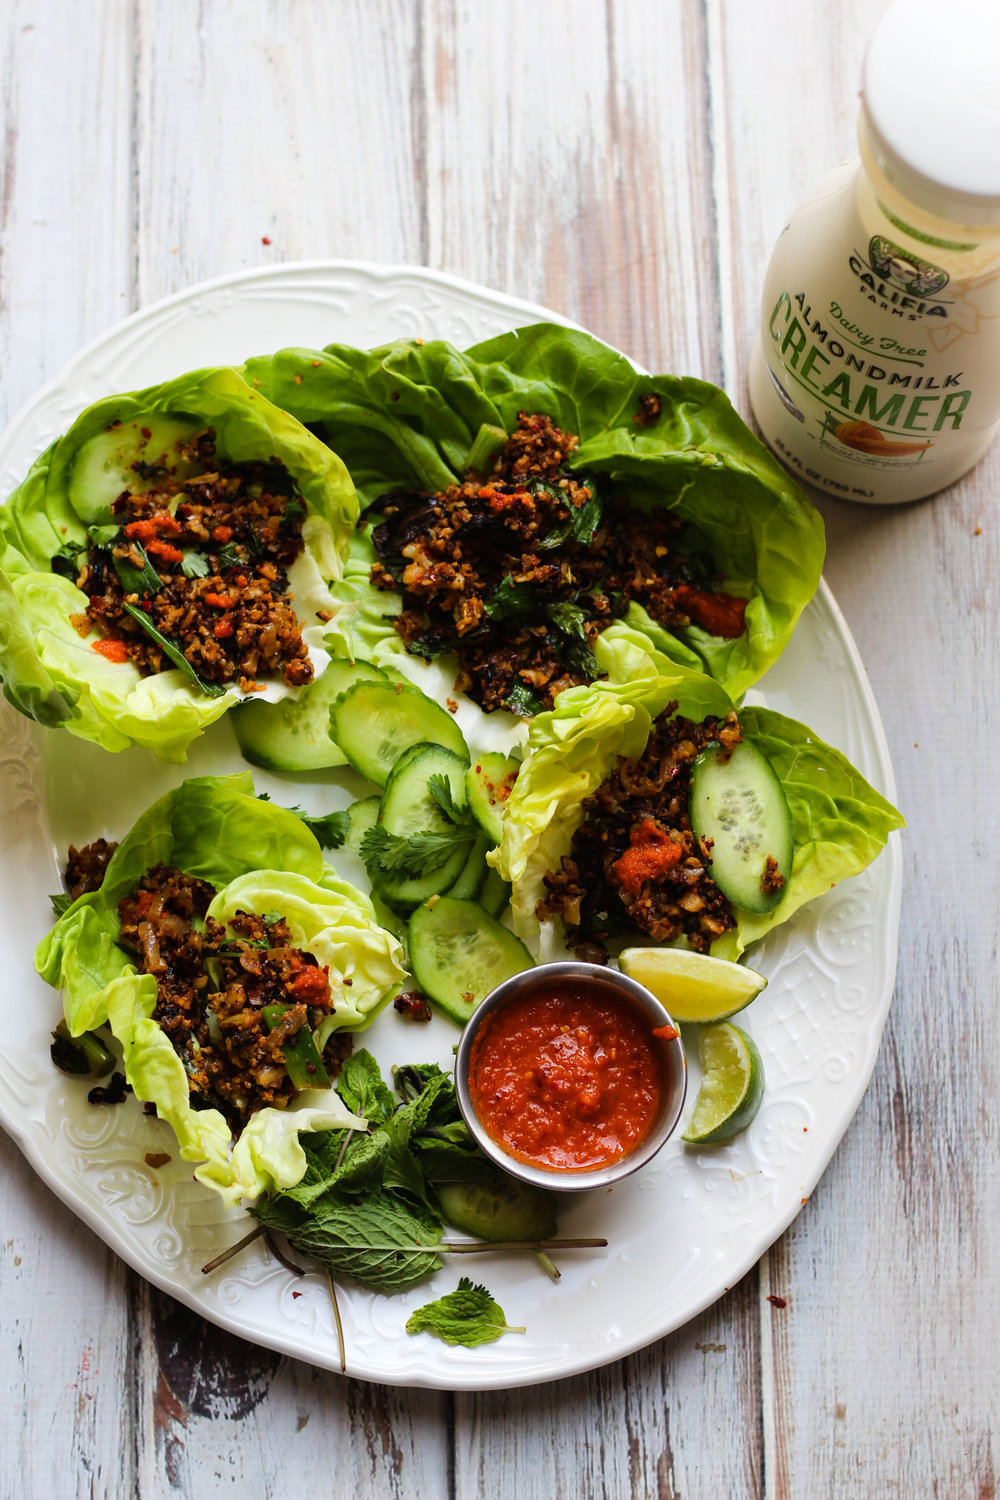 Vegan Cauliflower Larb with Homemade Hot Sauce